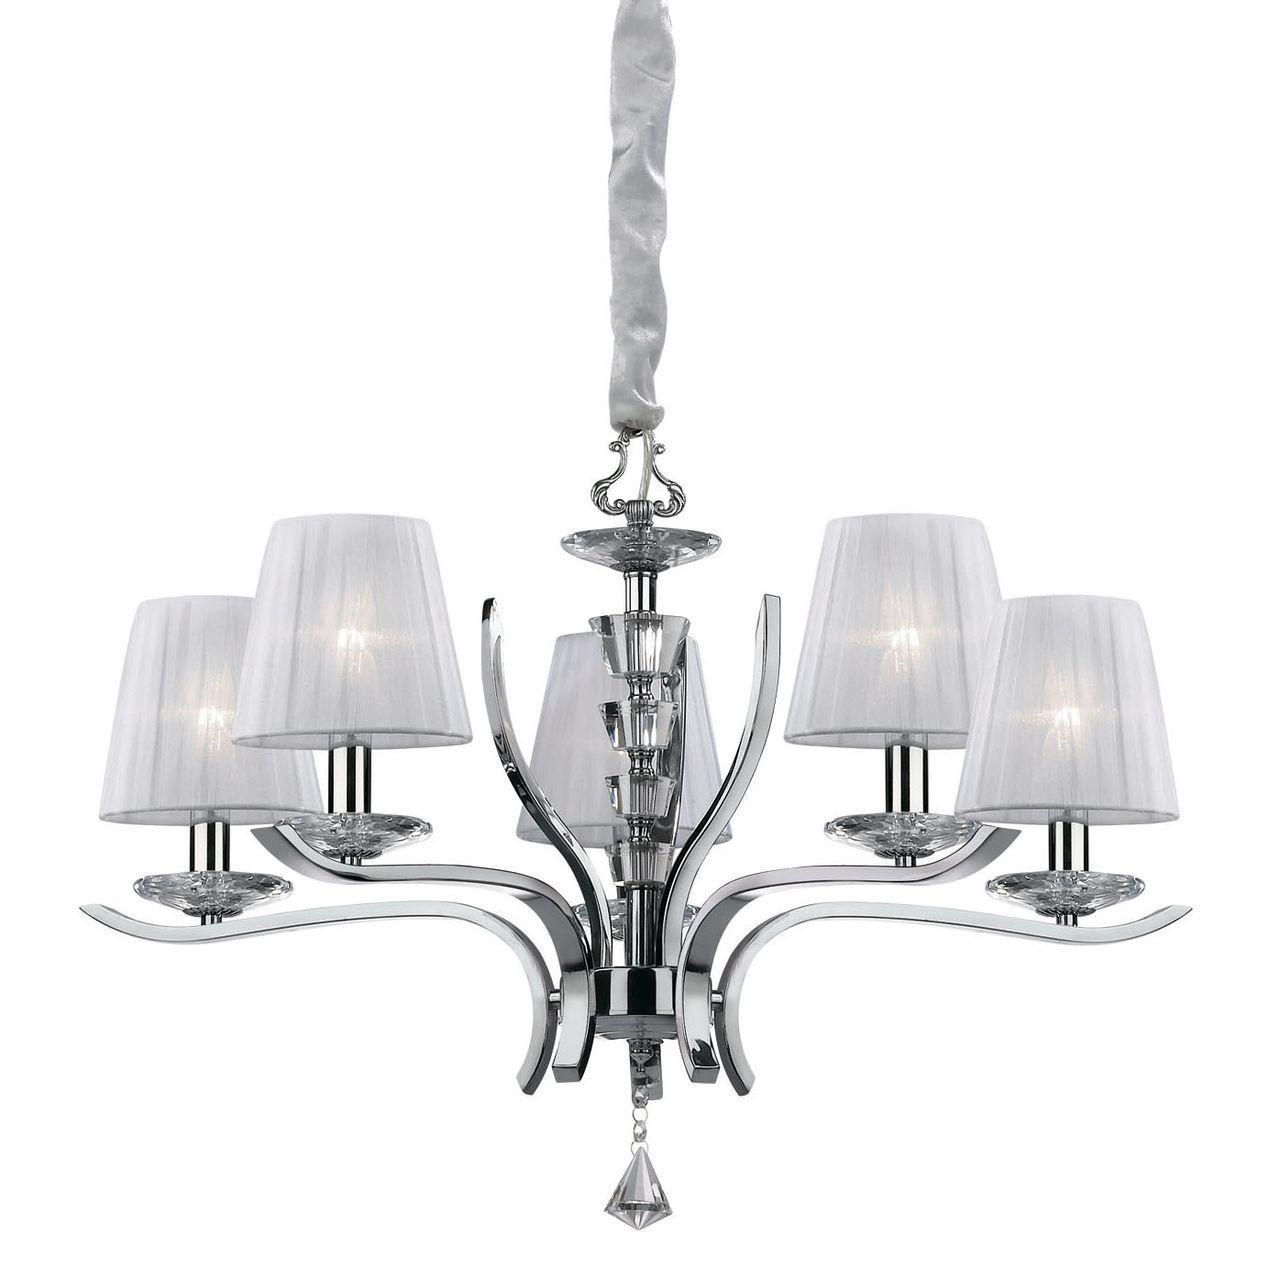 Люстра Ideal Lux Pegaso SP5 Bianco подвесная люстра ideal lux pegaso sp5 066448